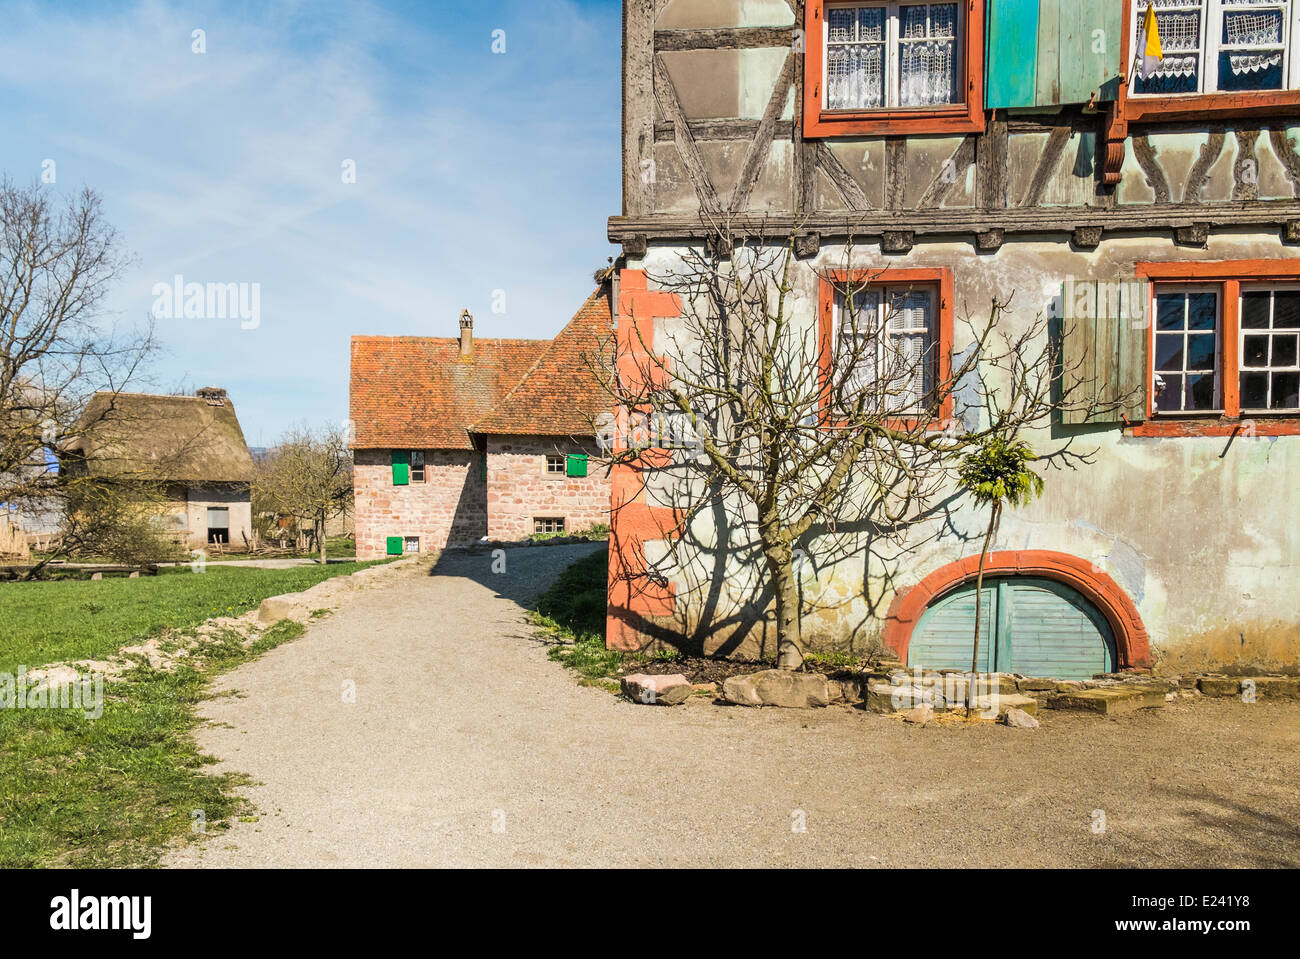 historical half-timbered houses at the écomusée d´alsace, ungersheim, alsace, france - Stock Image